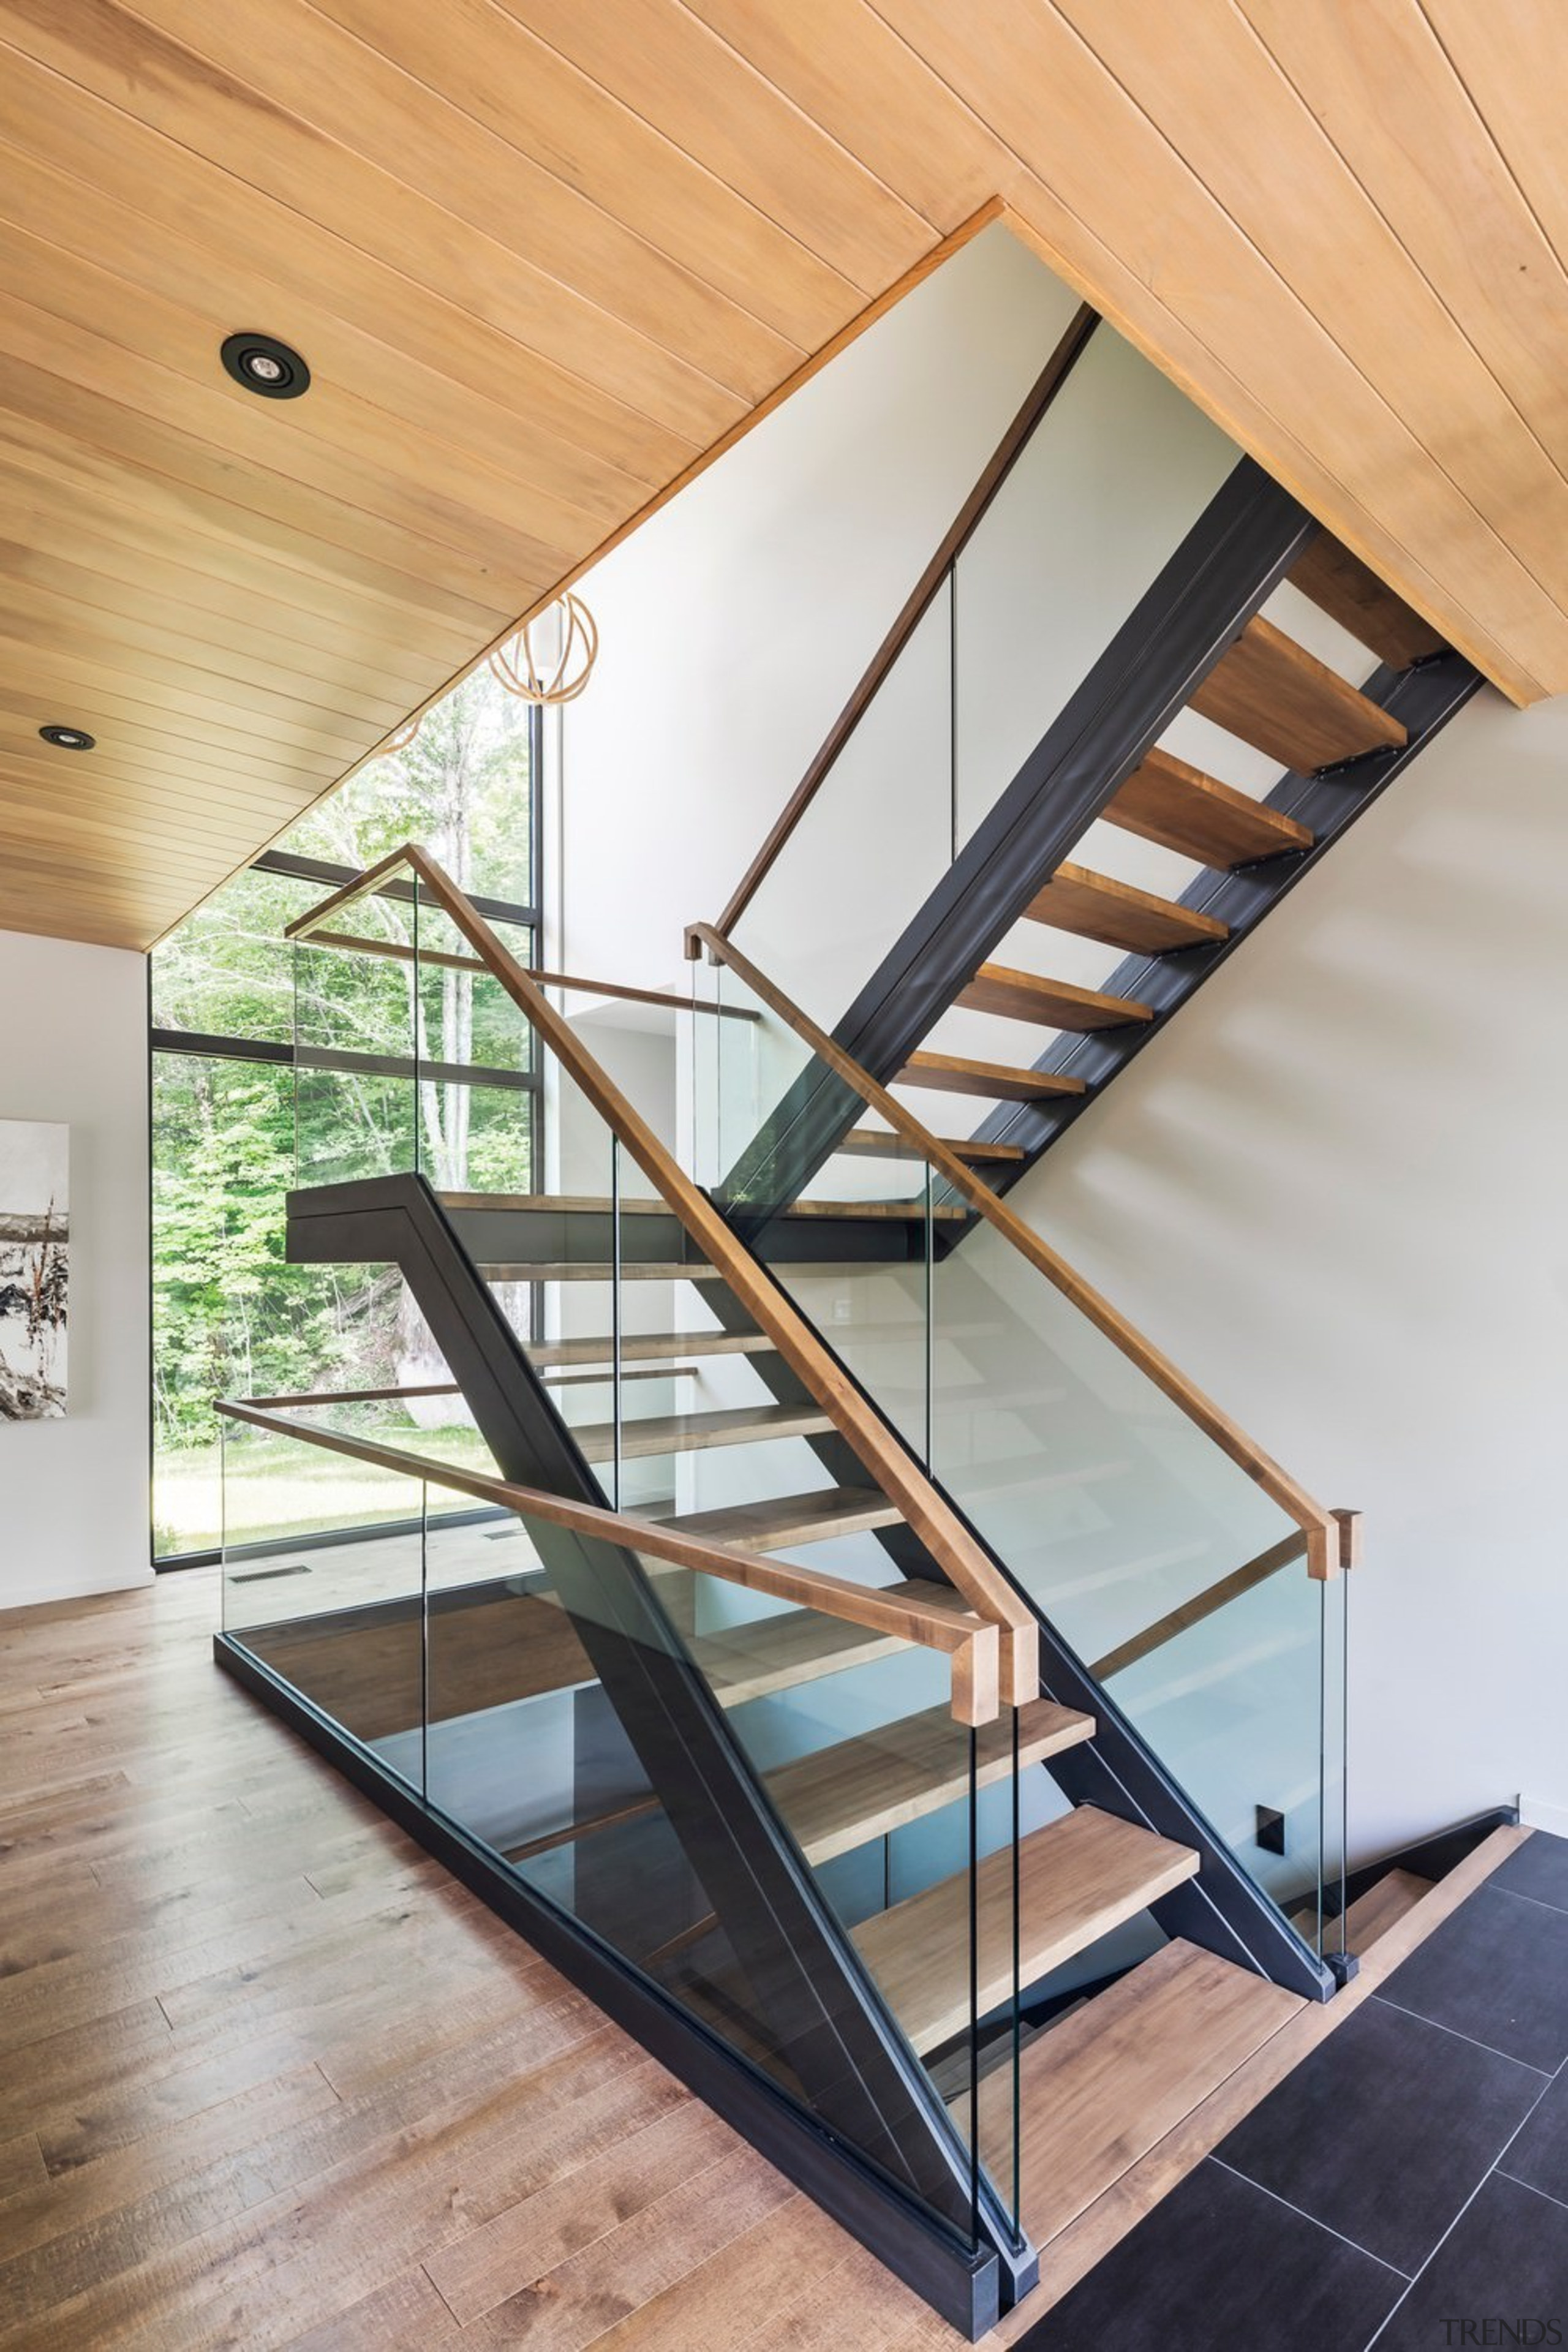 The feature staircase connects all levels of the architecture, daylighting, glass, handrail, house, interior design, product design, stairs, structure, wood, gray, orange